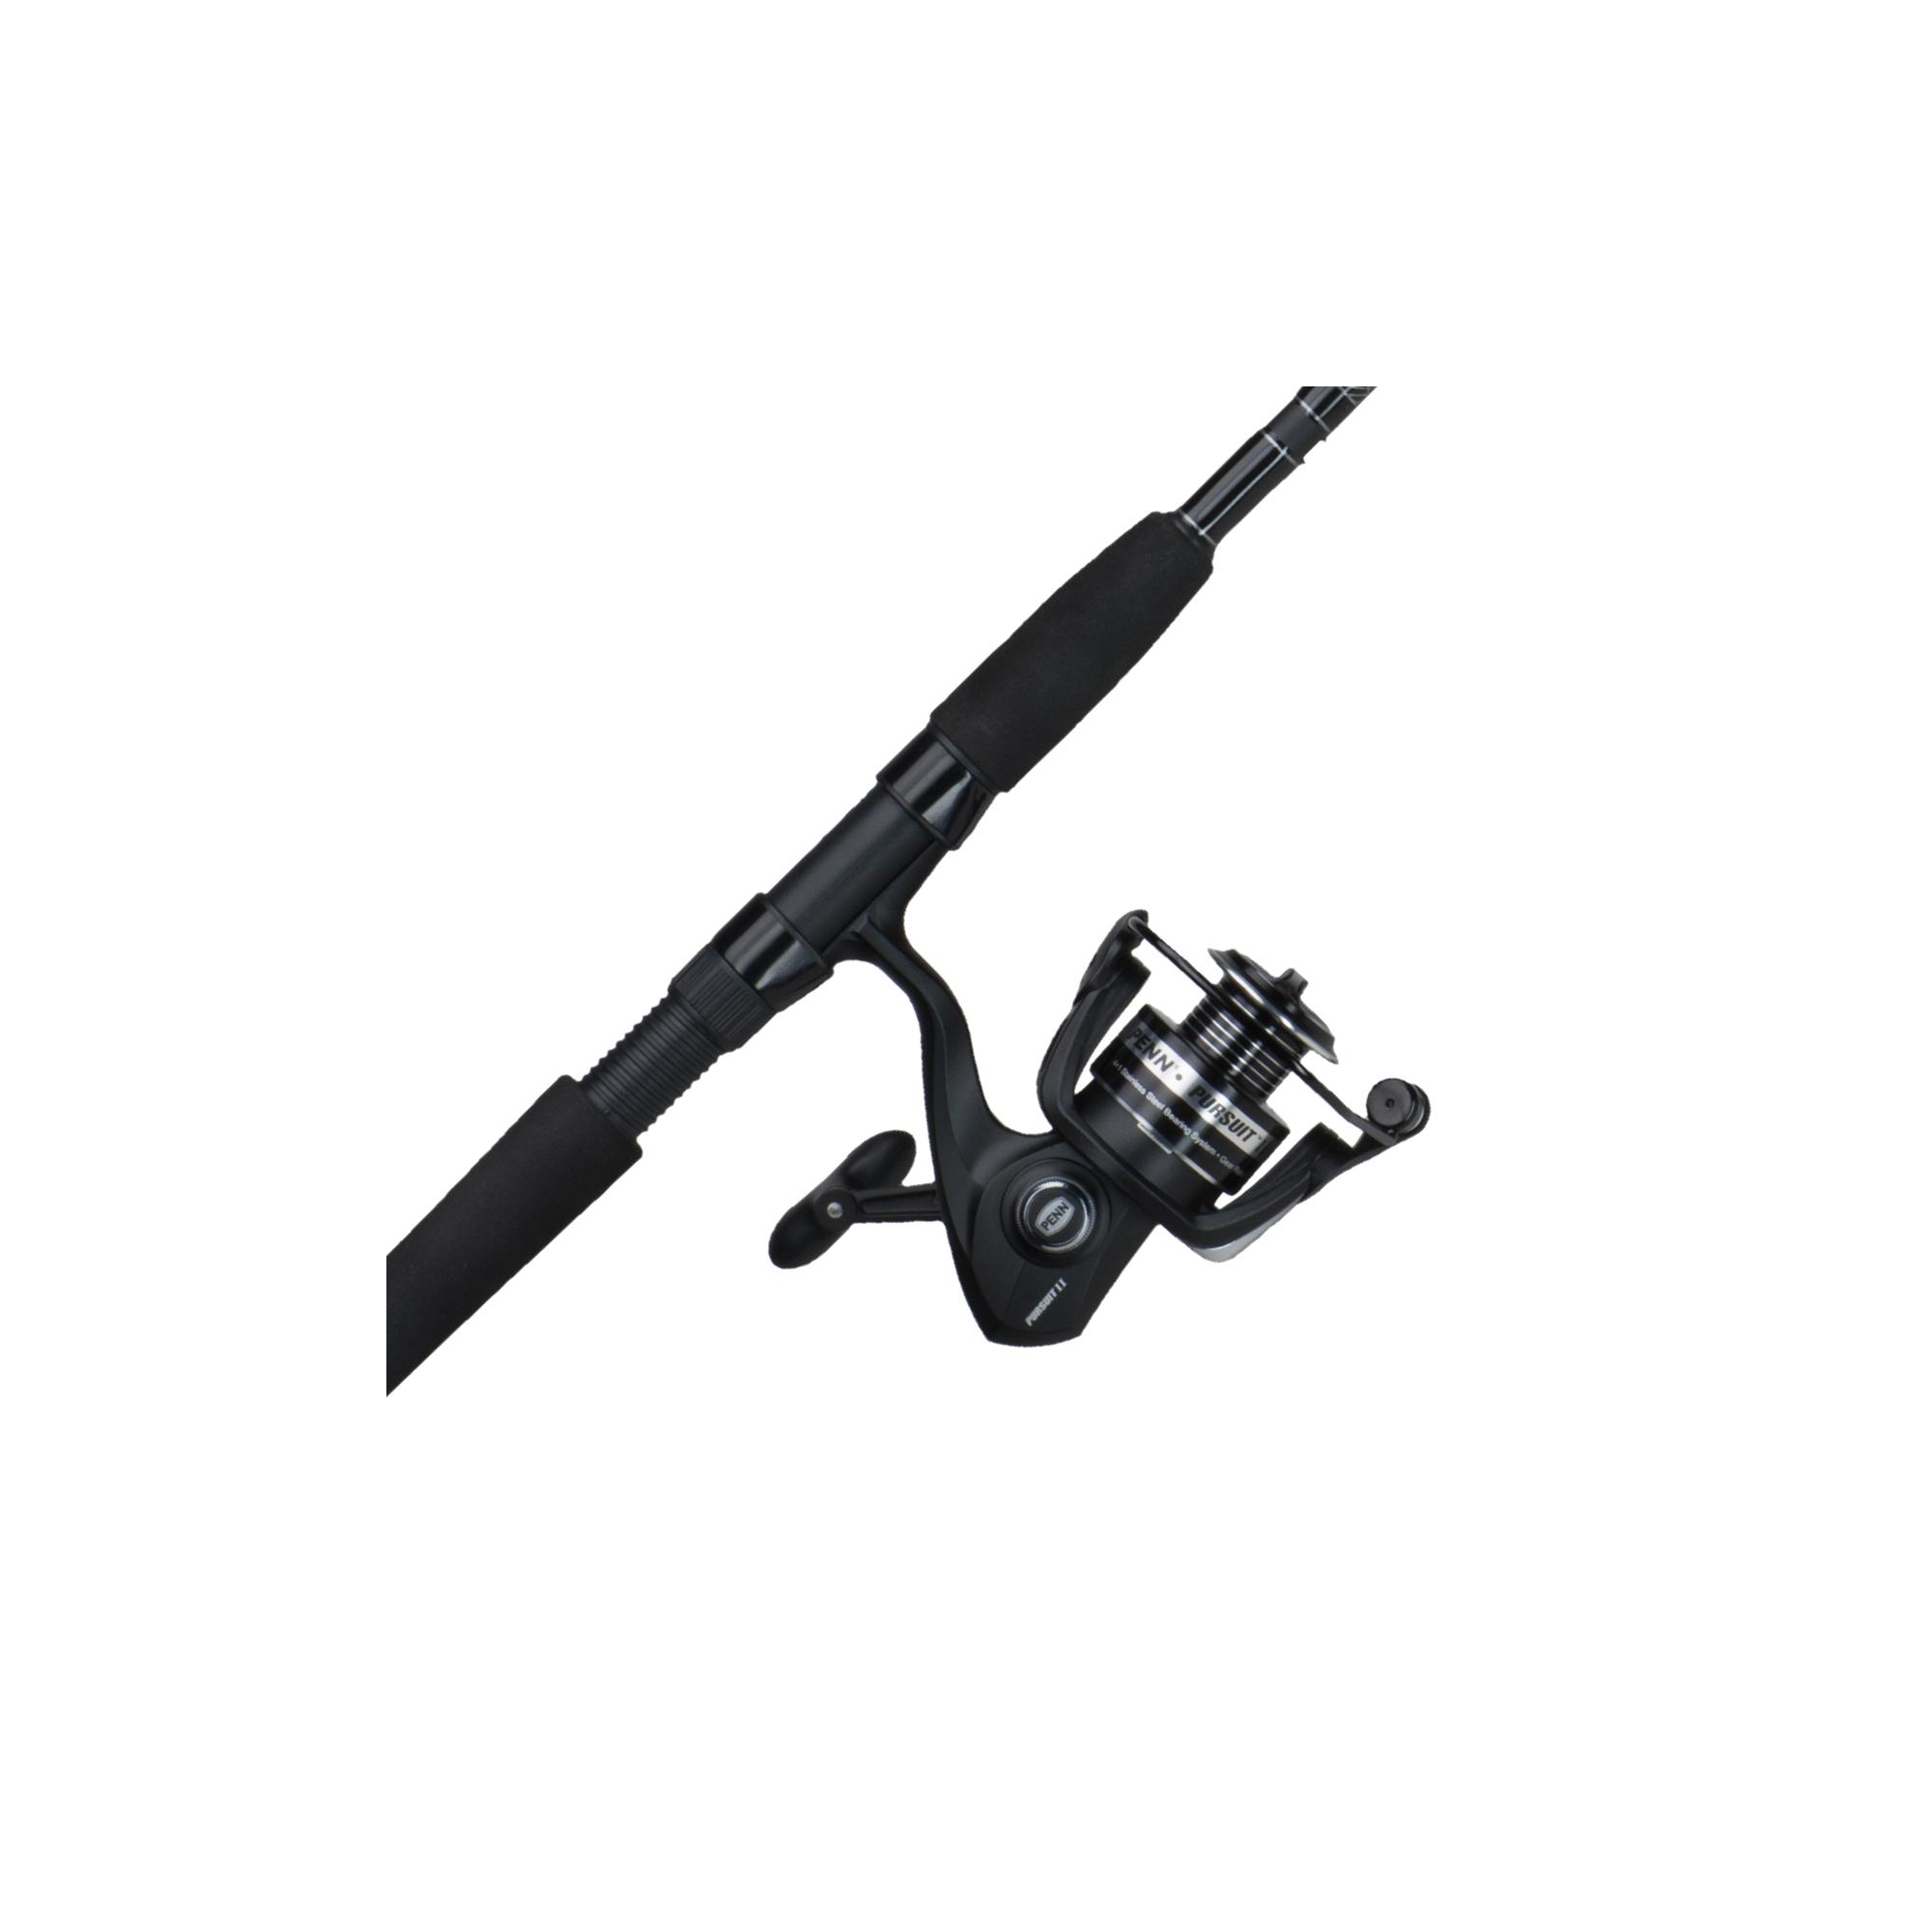 Penn Pursuit II Spinning Reel and Fishing Rod Combo